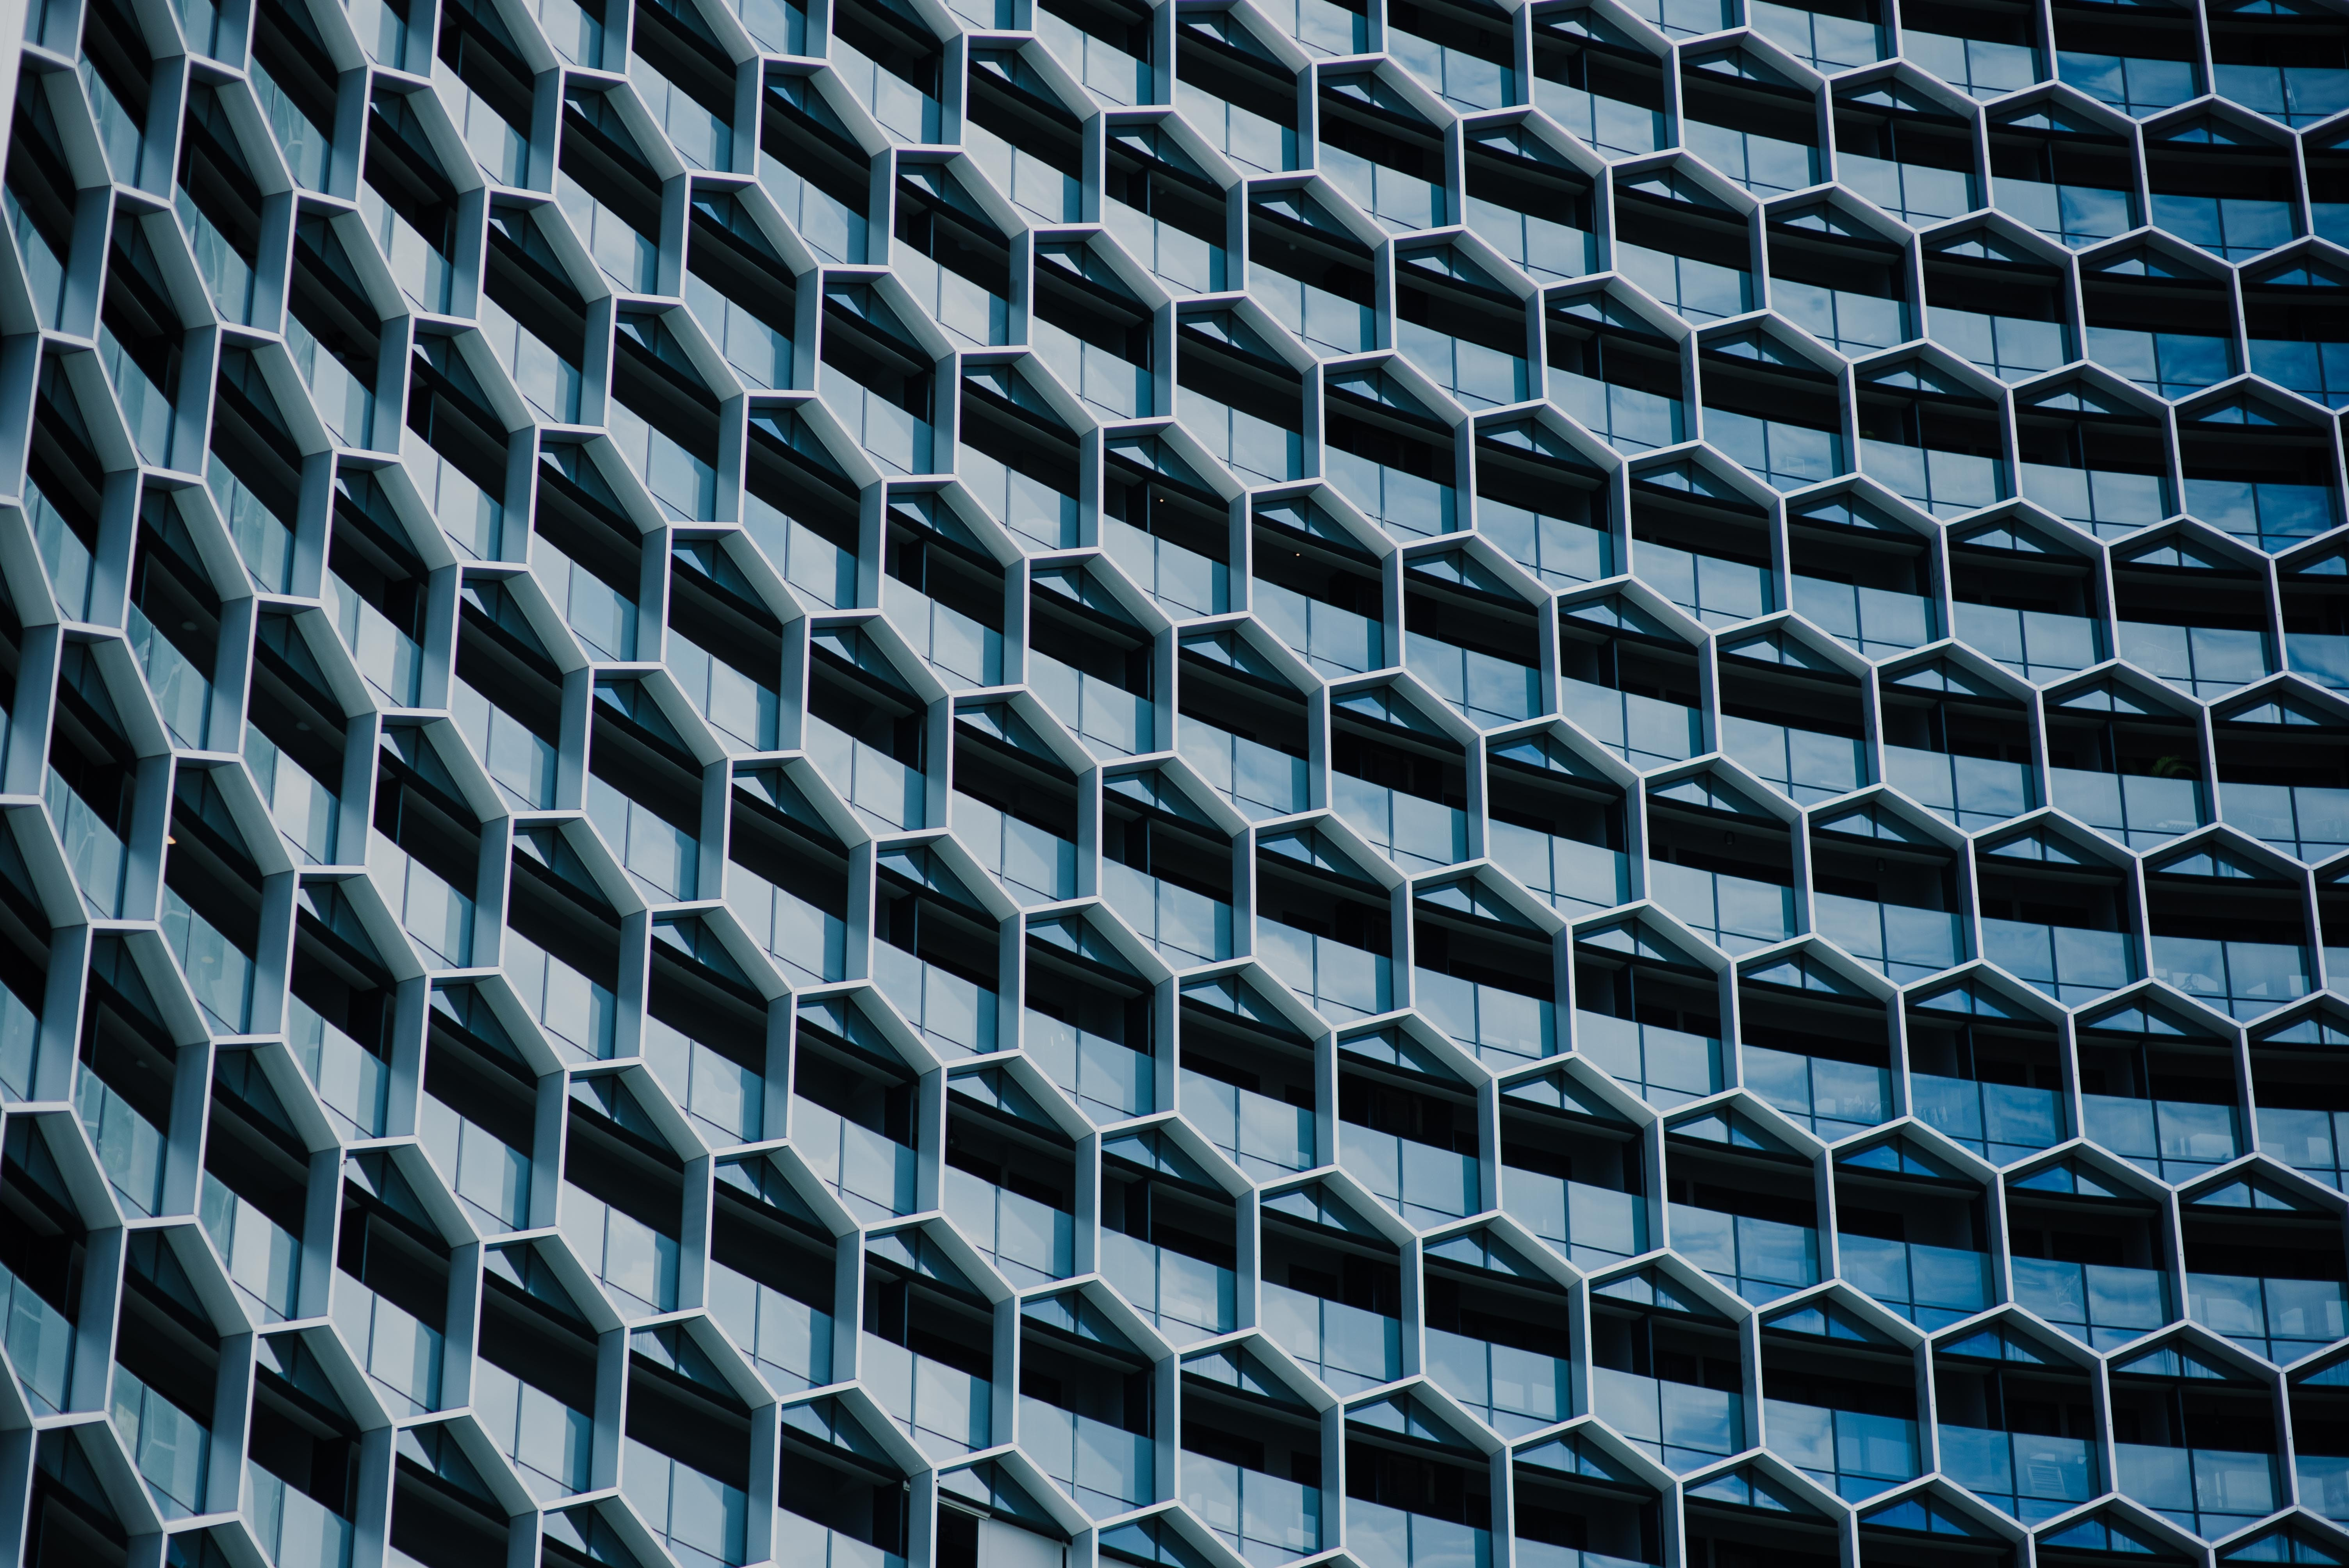 A building showing repetition through the shapes used in its design